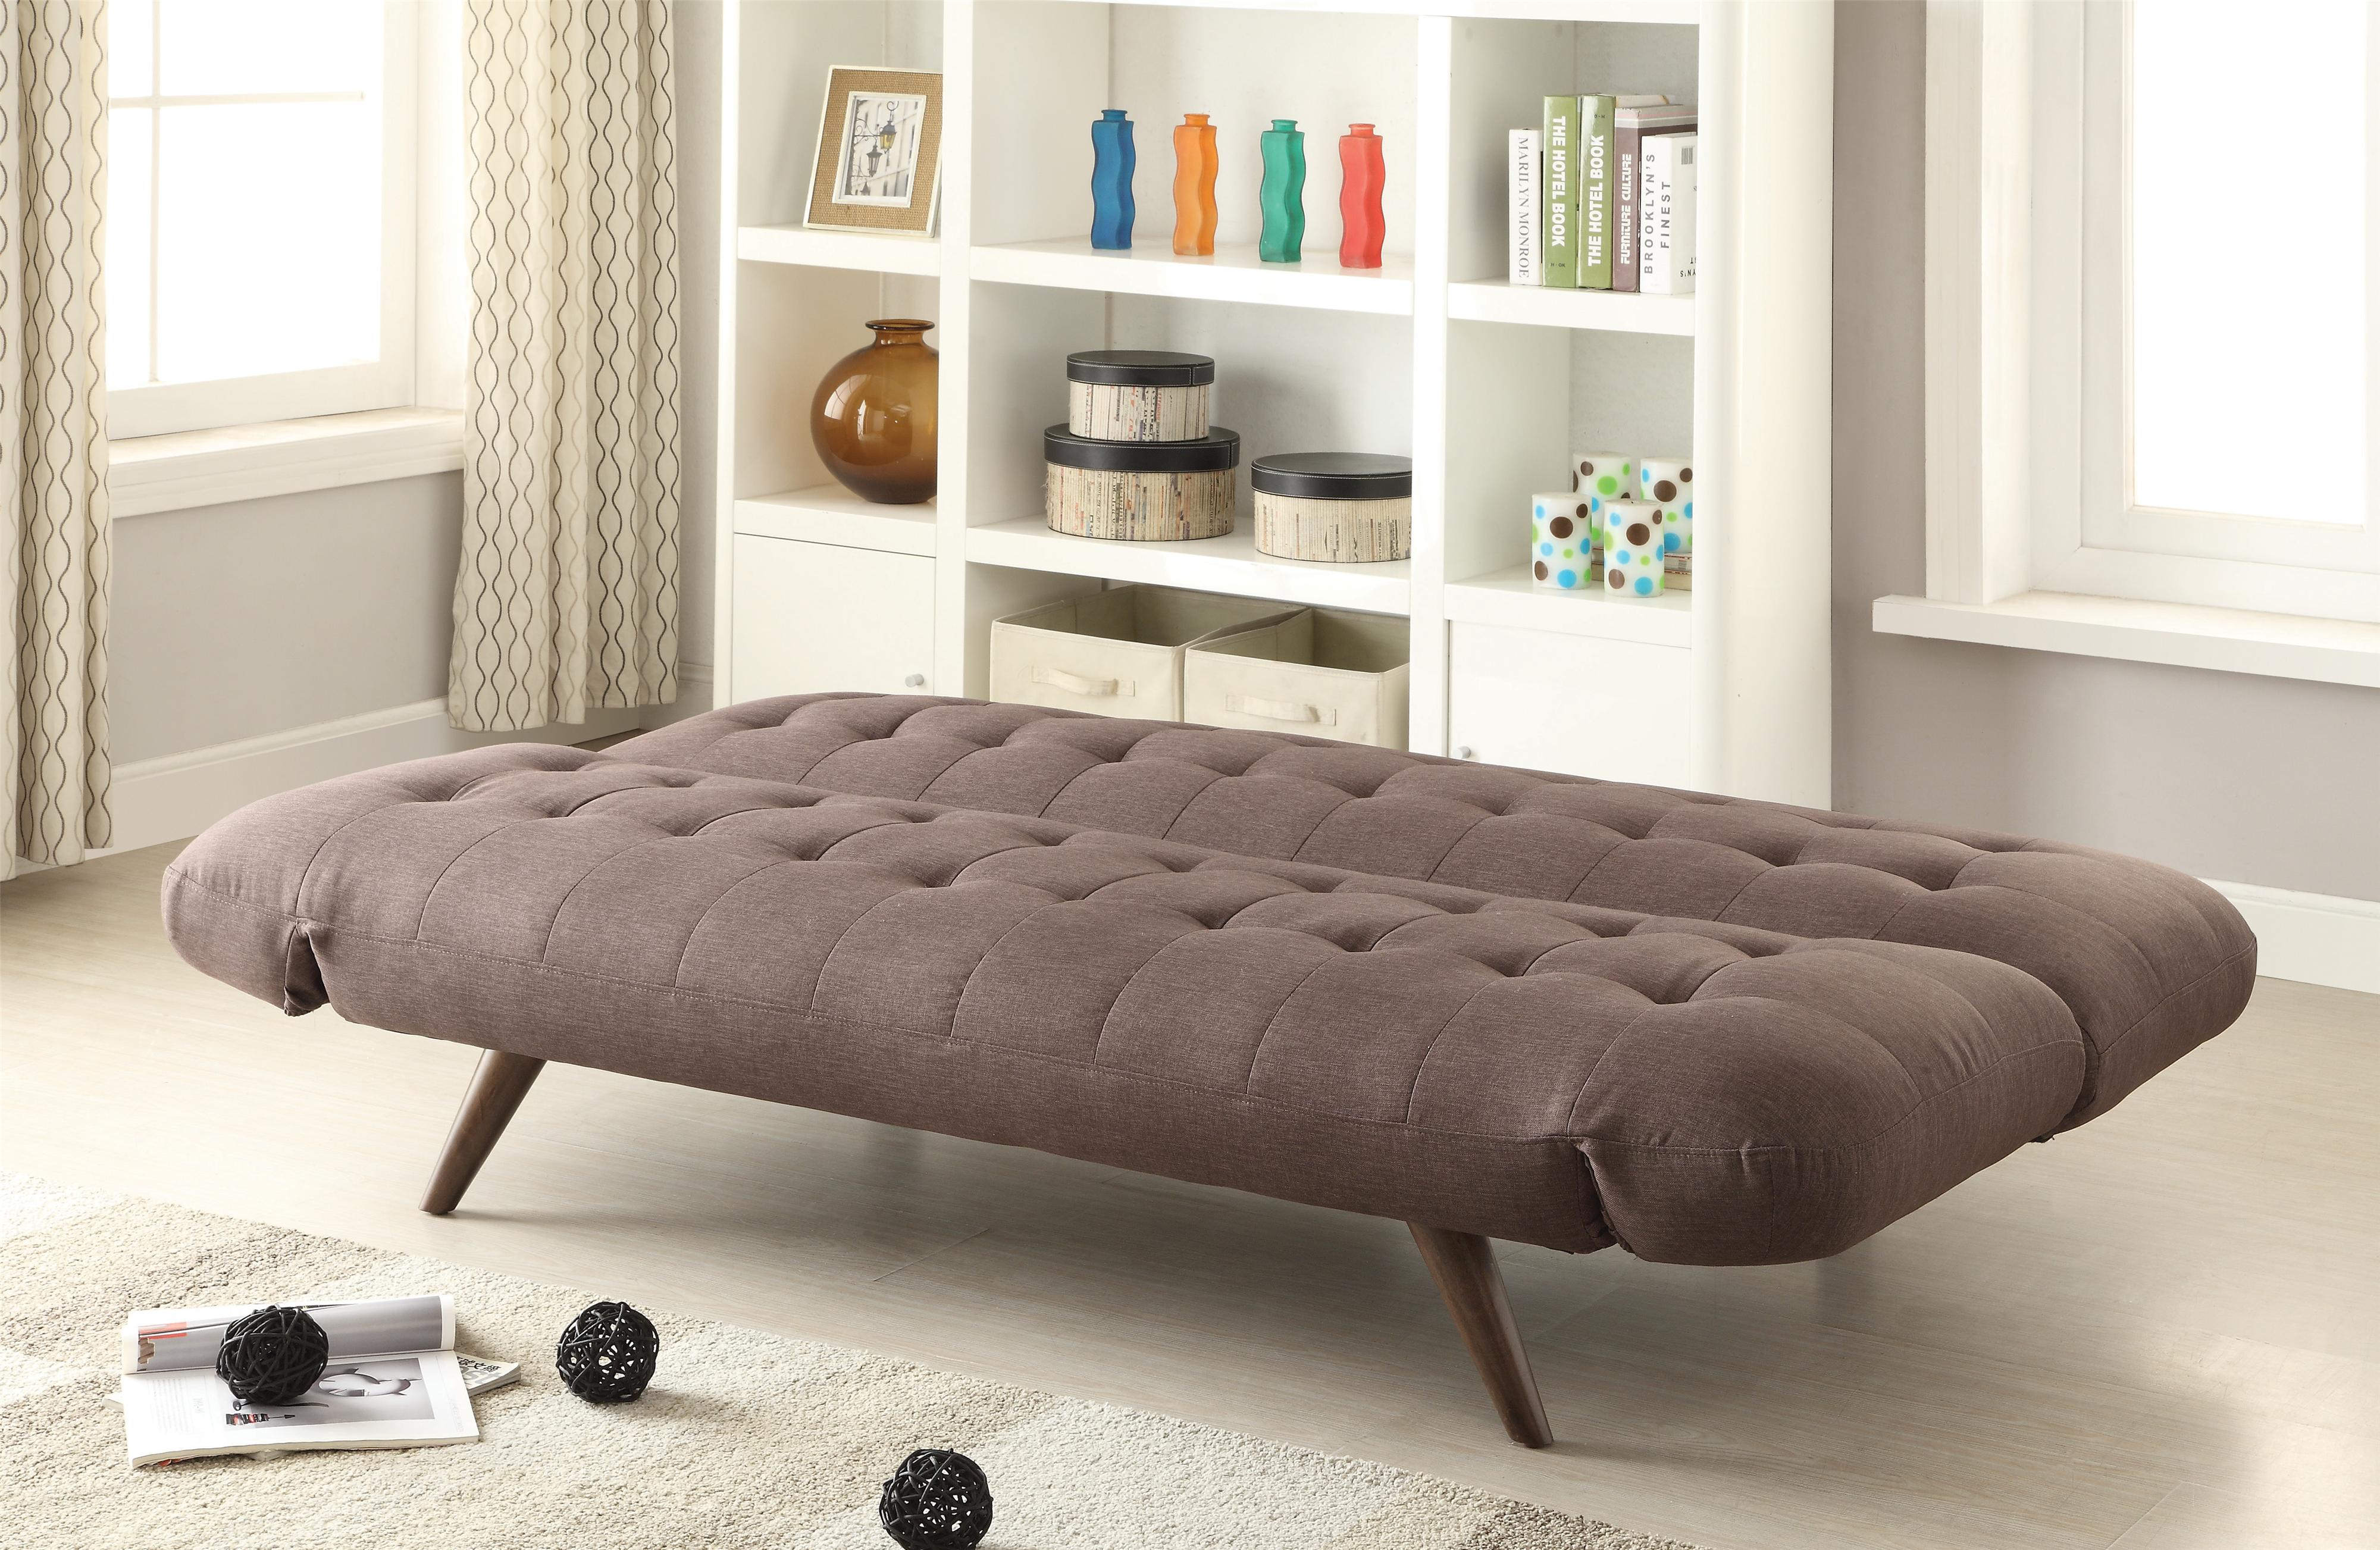 Sofa Beds and Futons Retro Modern Sofa Bed with TuftingCone